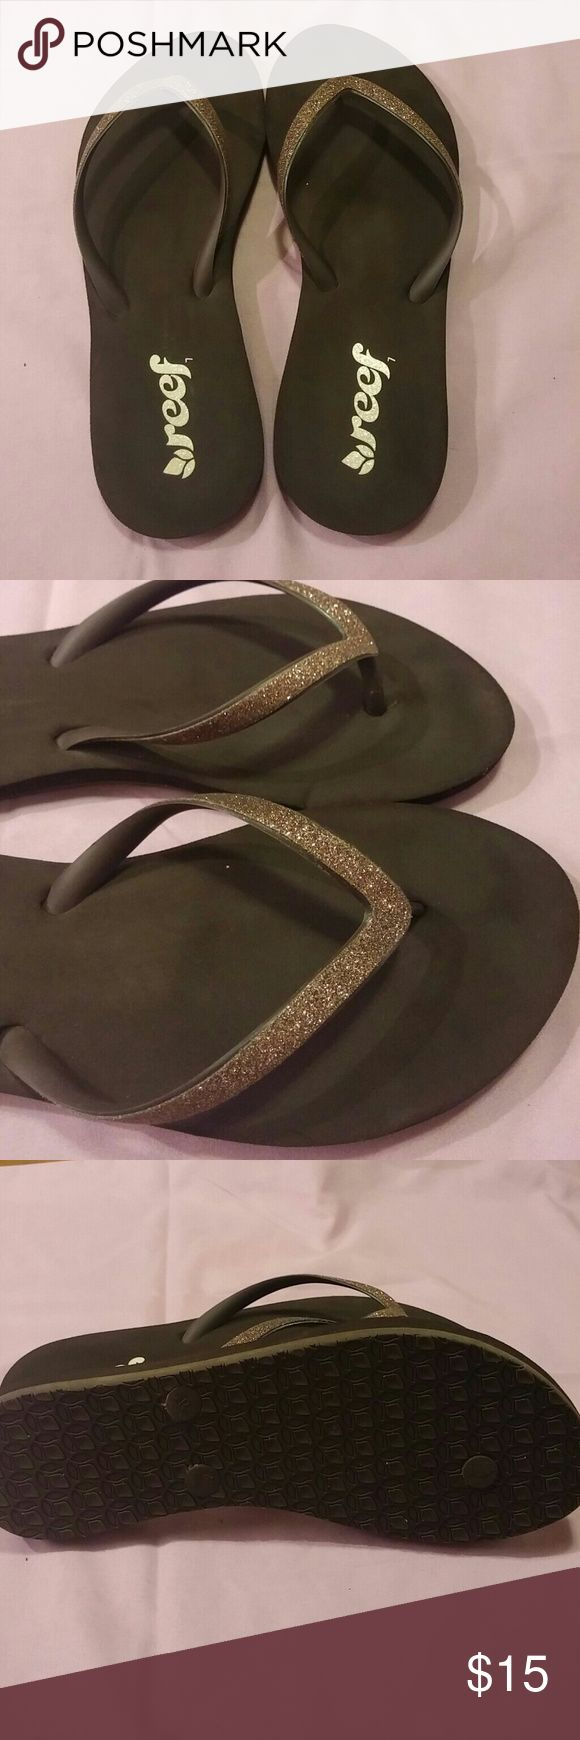 Reef flip flops with bling. Bronze colored glitter on these Reef flip flops. Size 7 Reef Shoes Sandals